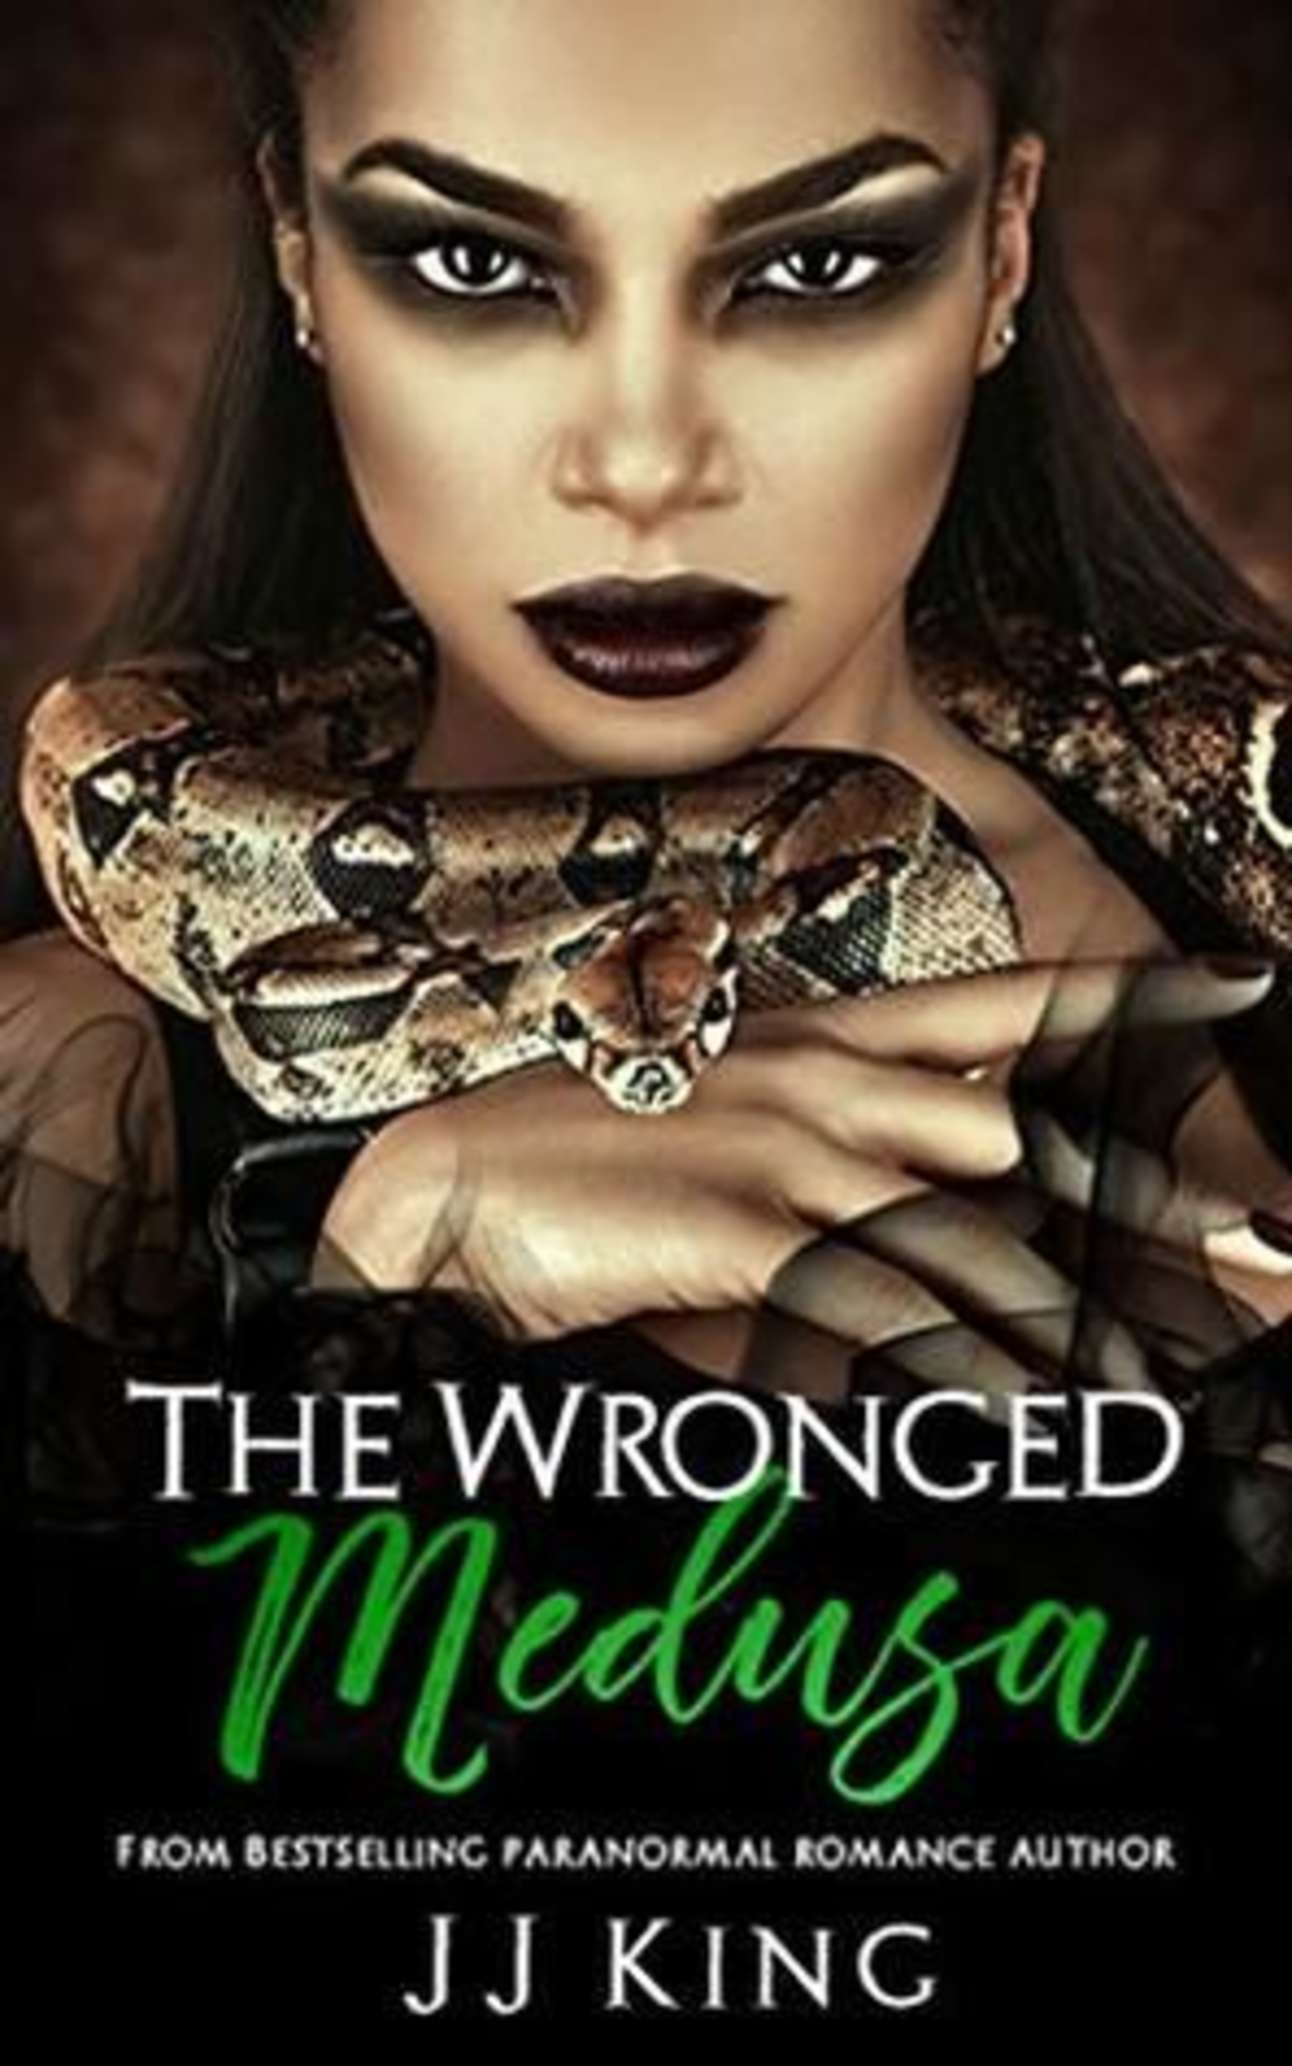 Medusa The Wronged